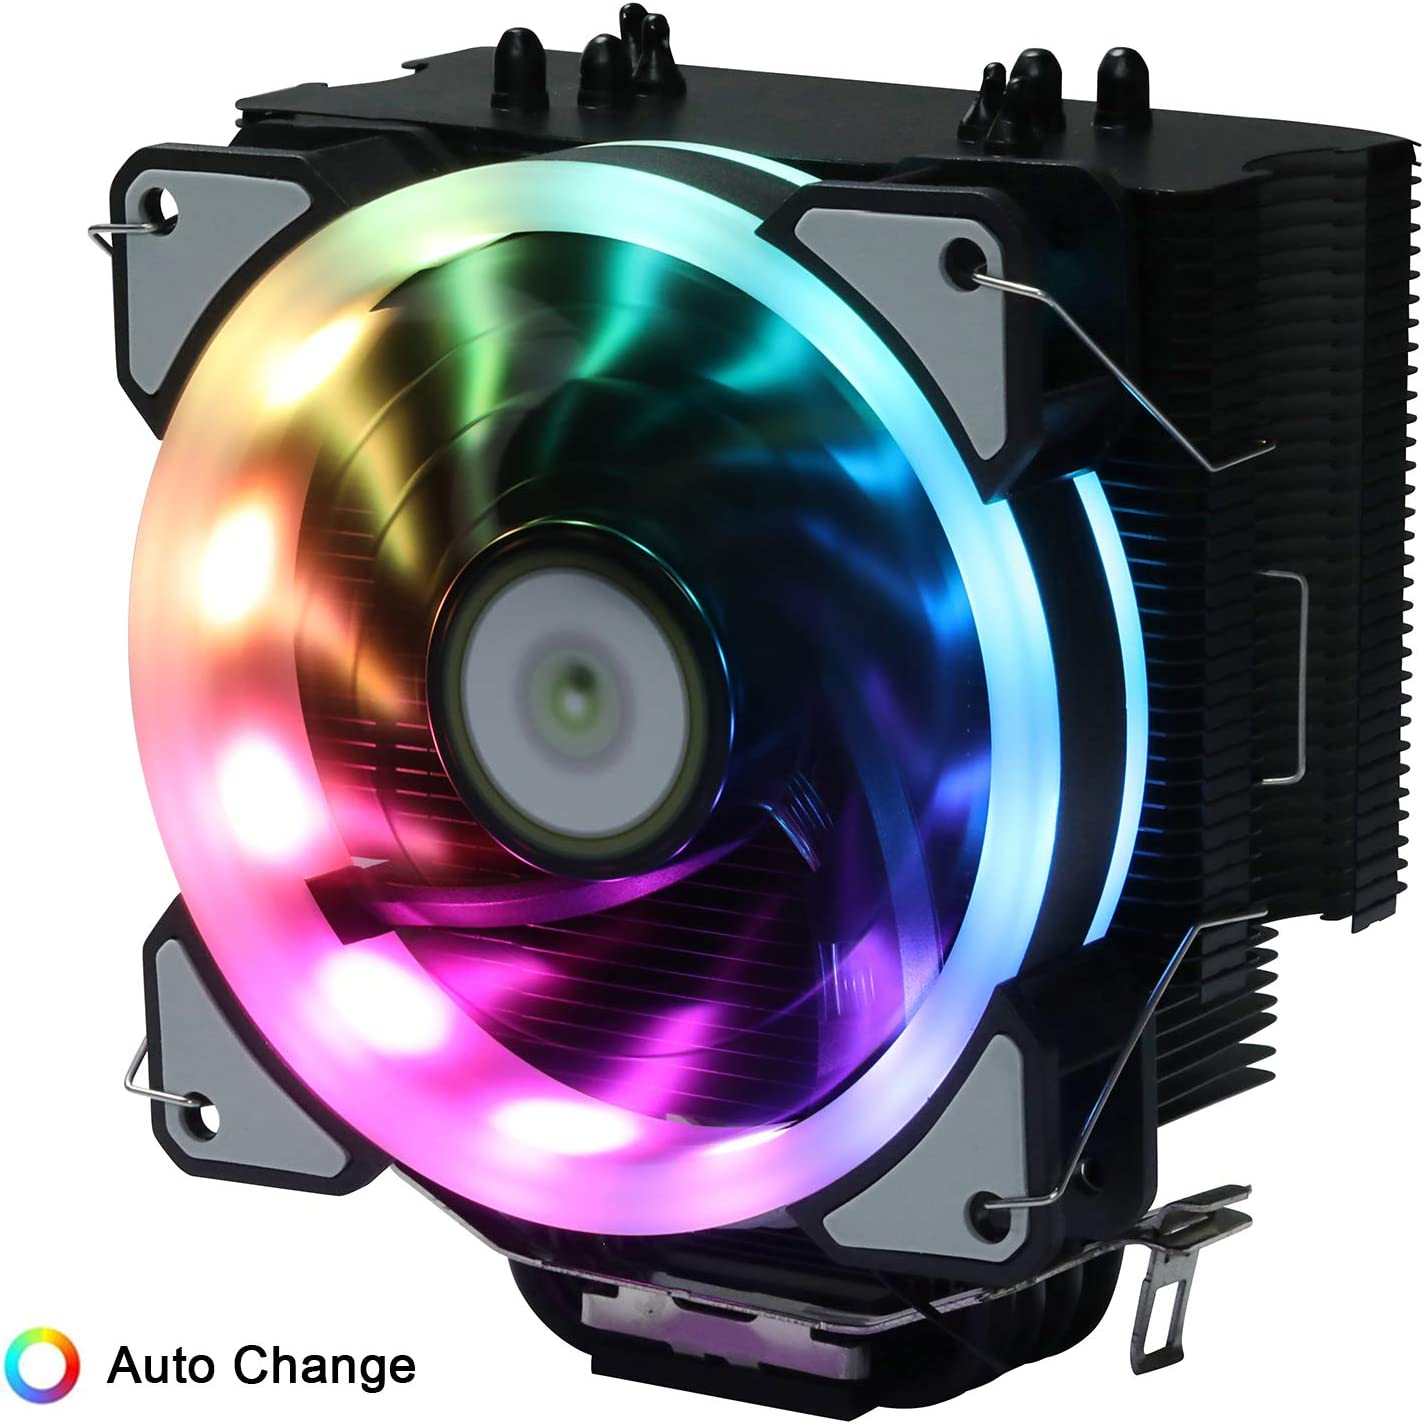 DS PWM Fan CPU Air Cooler LED Addressable RGB Fan for Computer Case Intel Core i7/i5/i3 (800-1800RPM, Auto Changer Color, C Series)